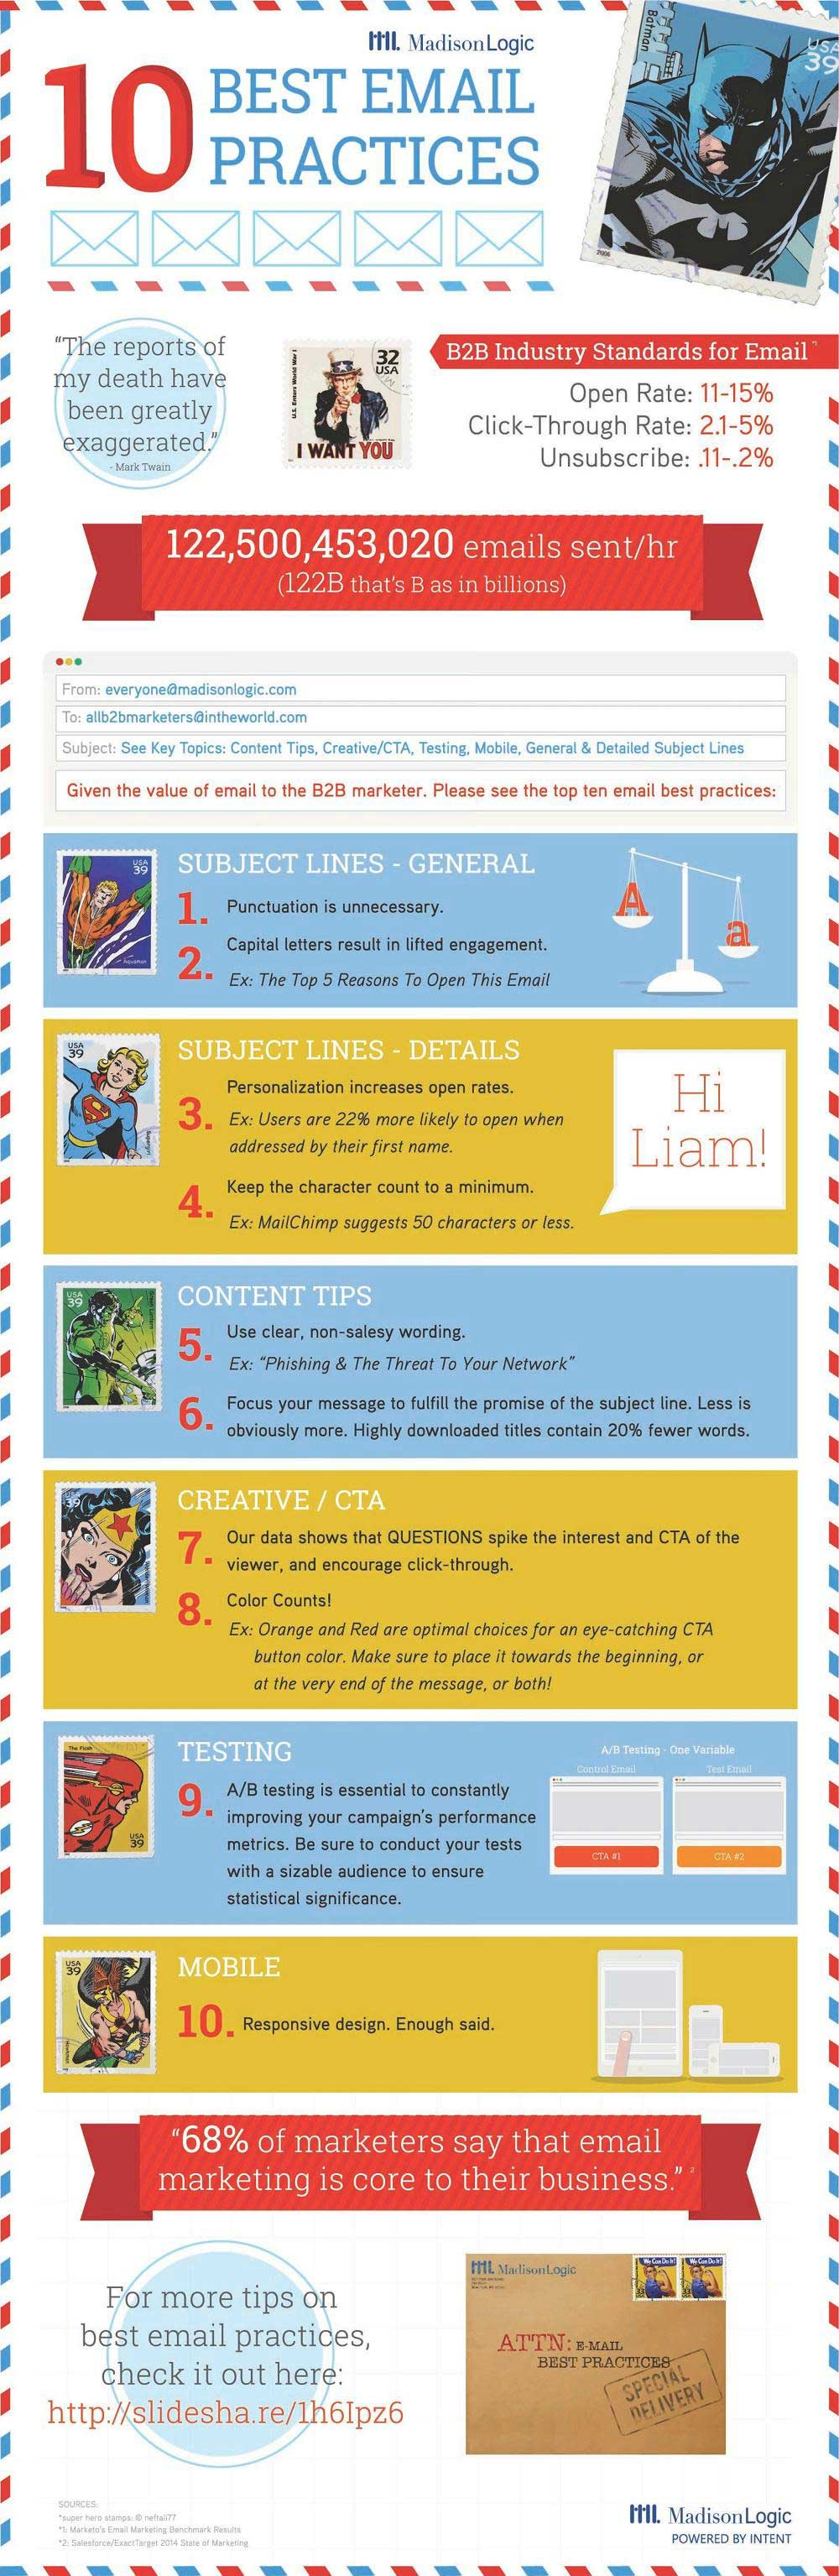 Email marketing best practices email marketing tips 10 email marketing best practices infographic pronofoot35fo Gallery